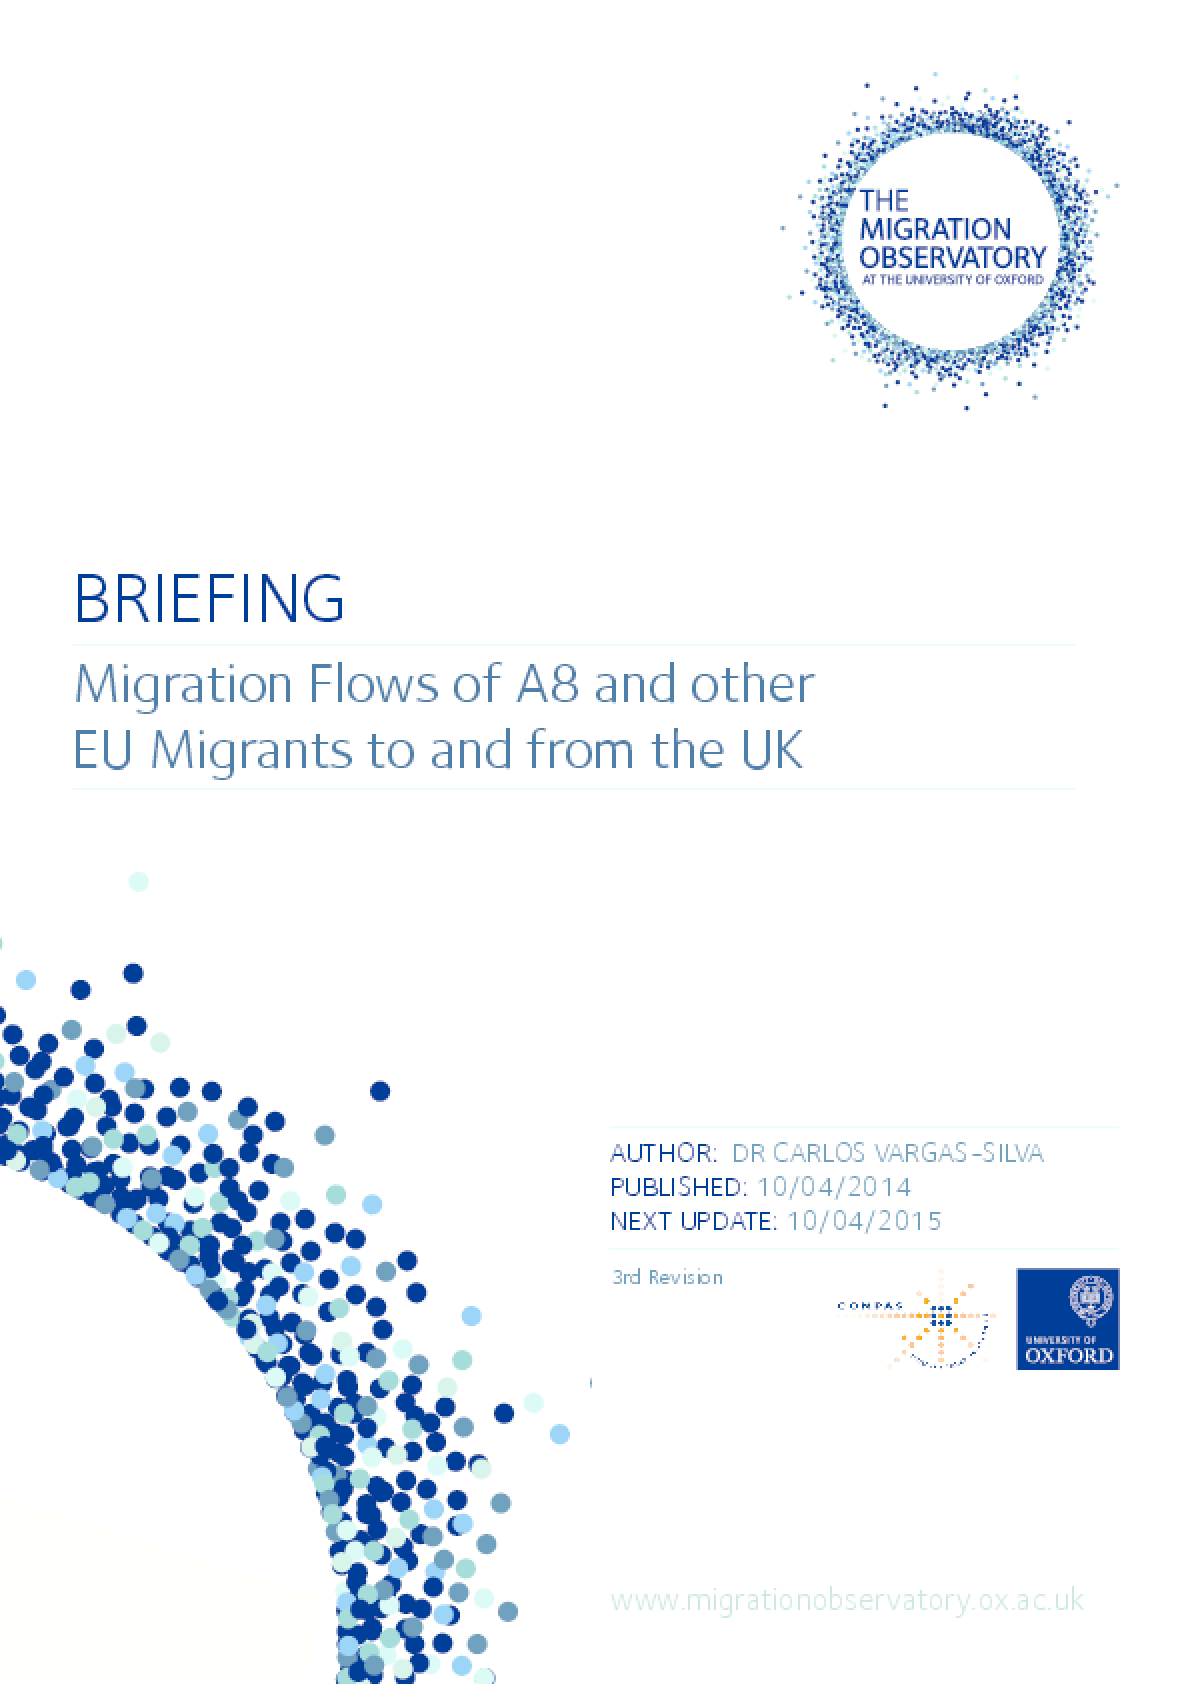 Migration Flows of A8 and Other EU Migrants to and from the UK